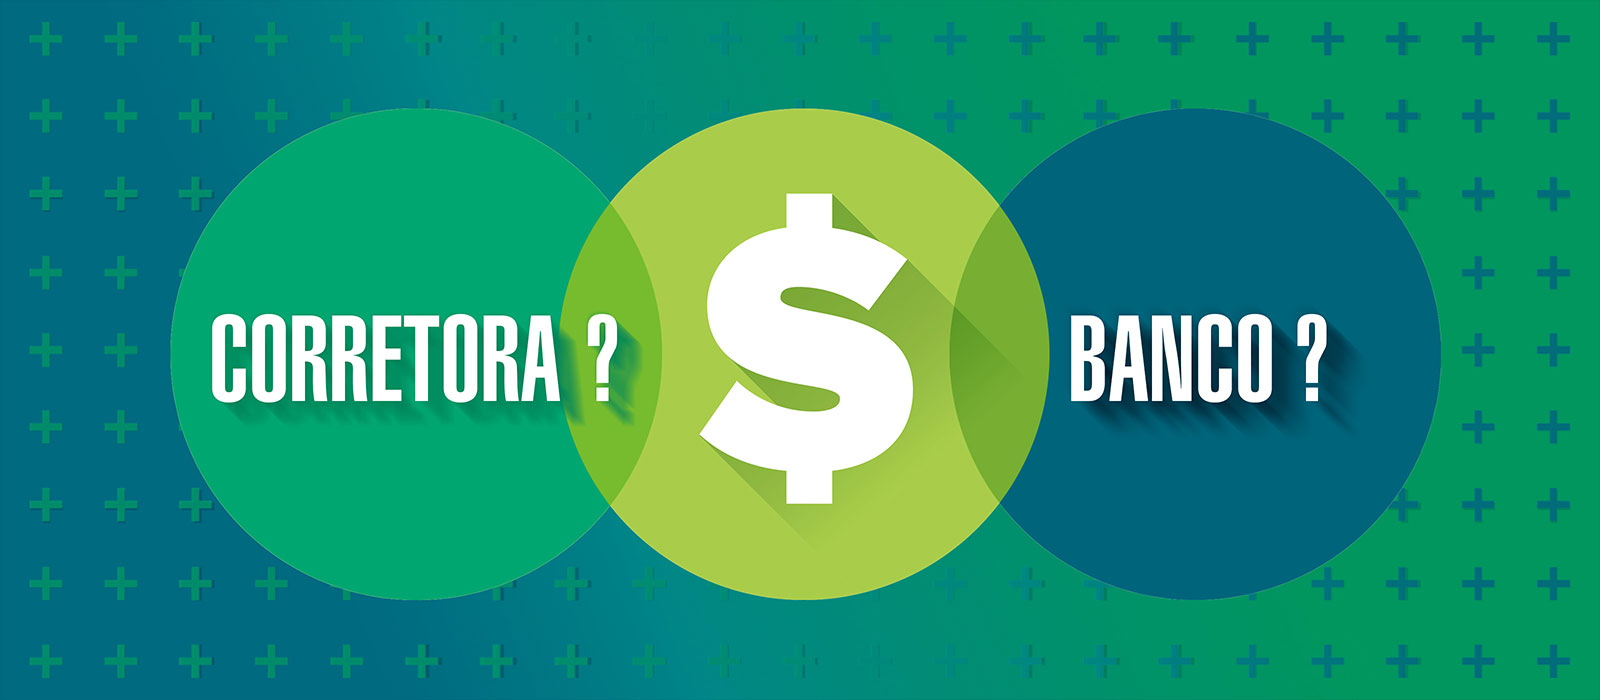 Banco ou corretora independente?